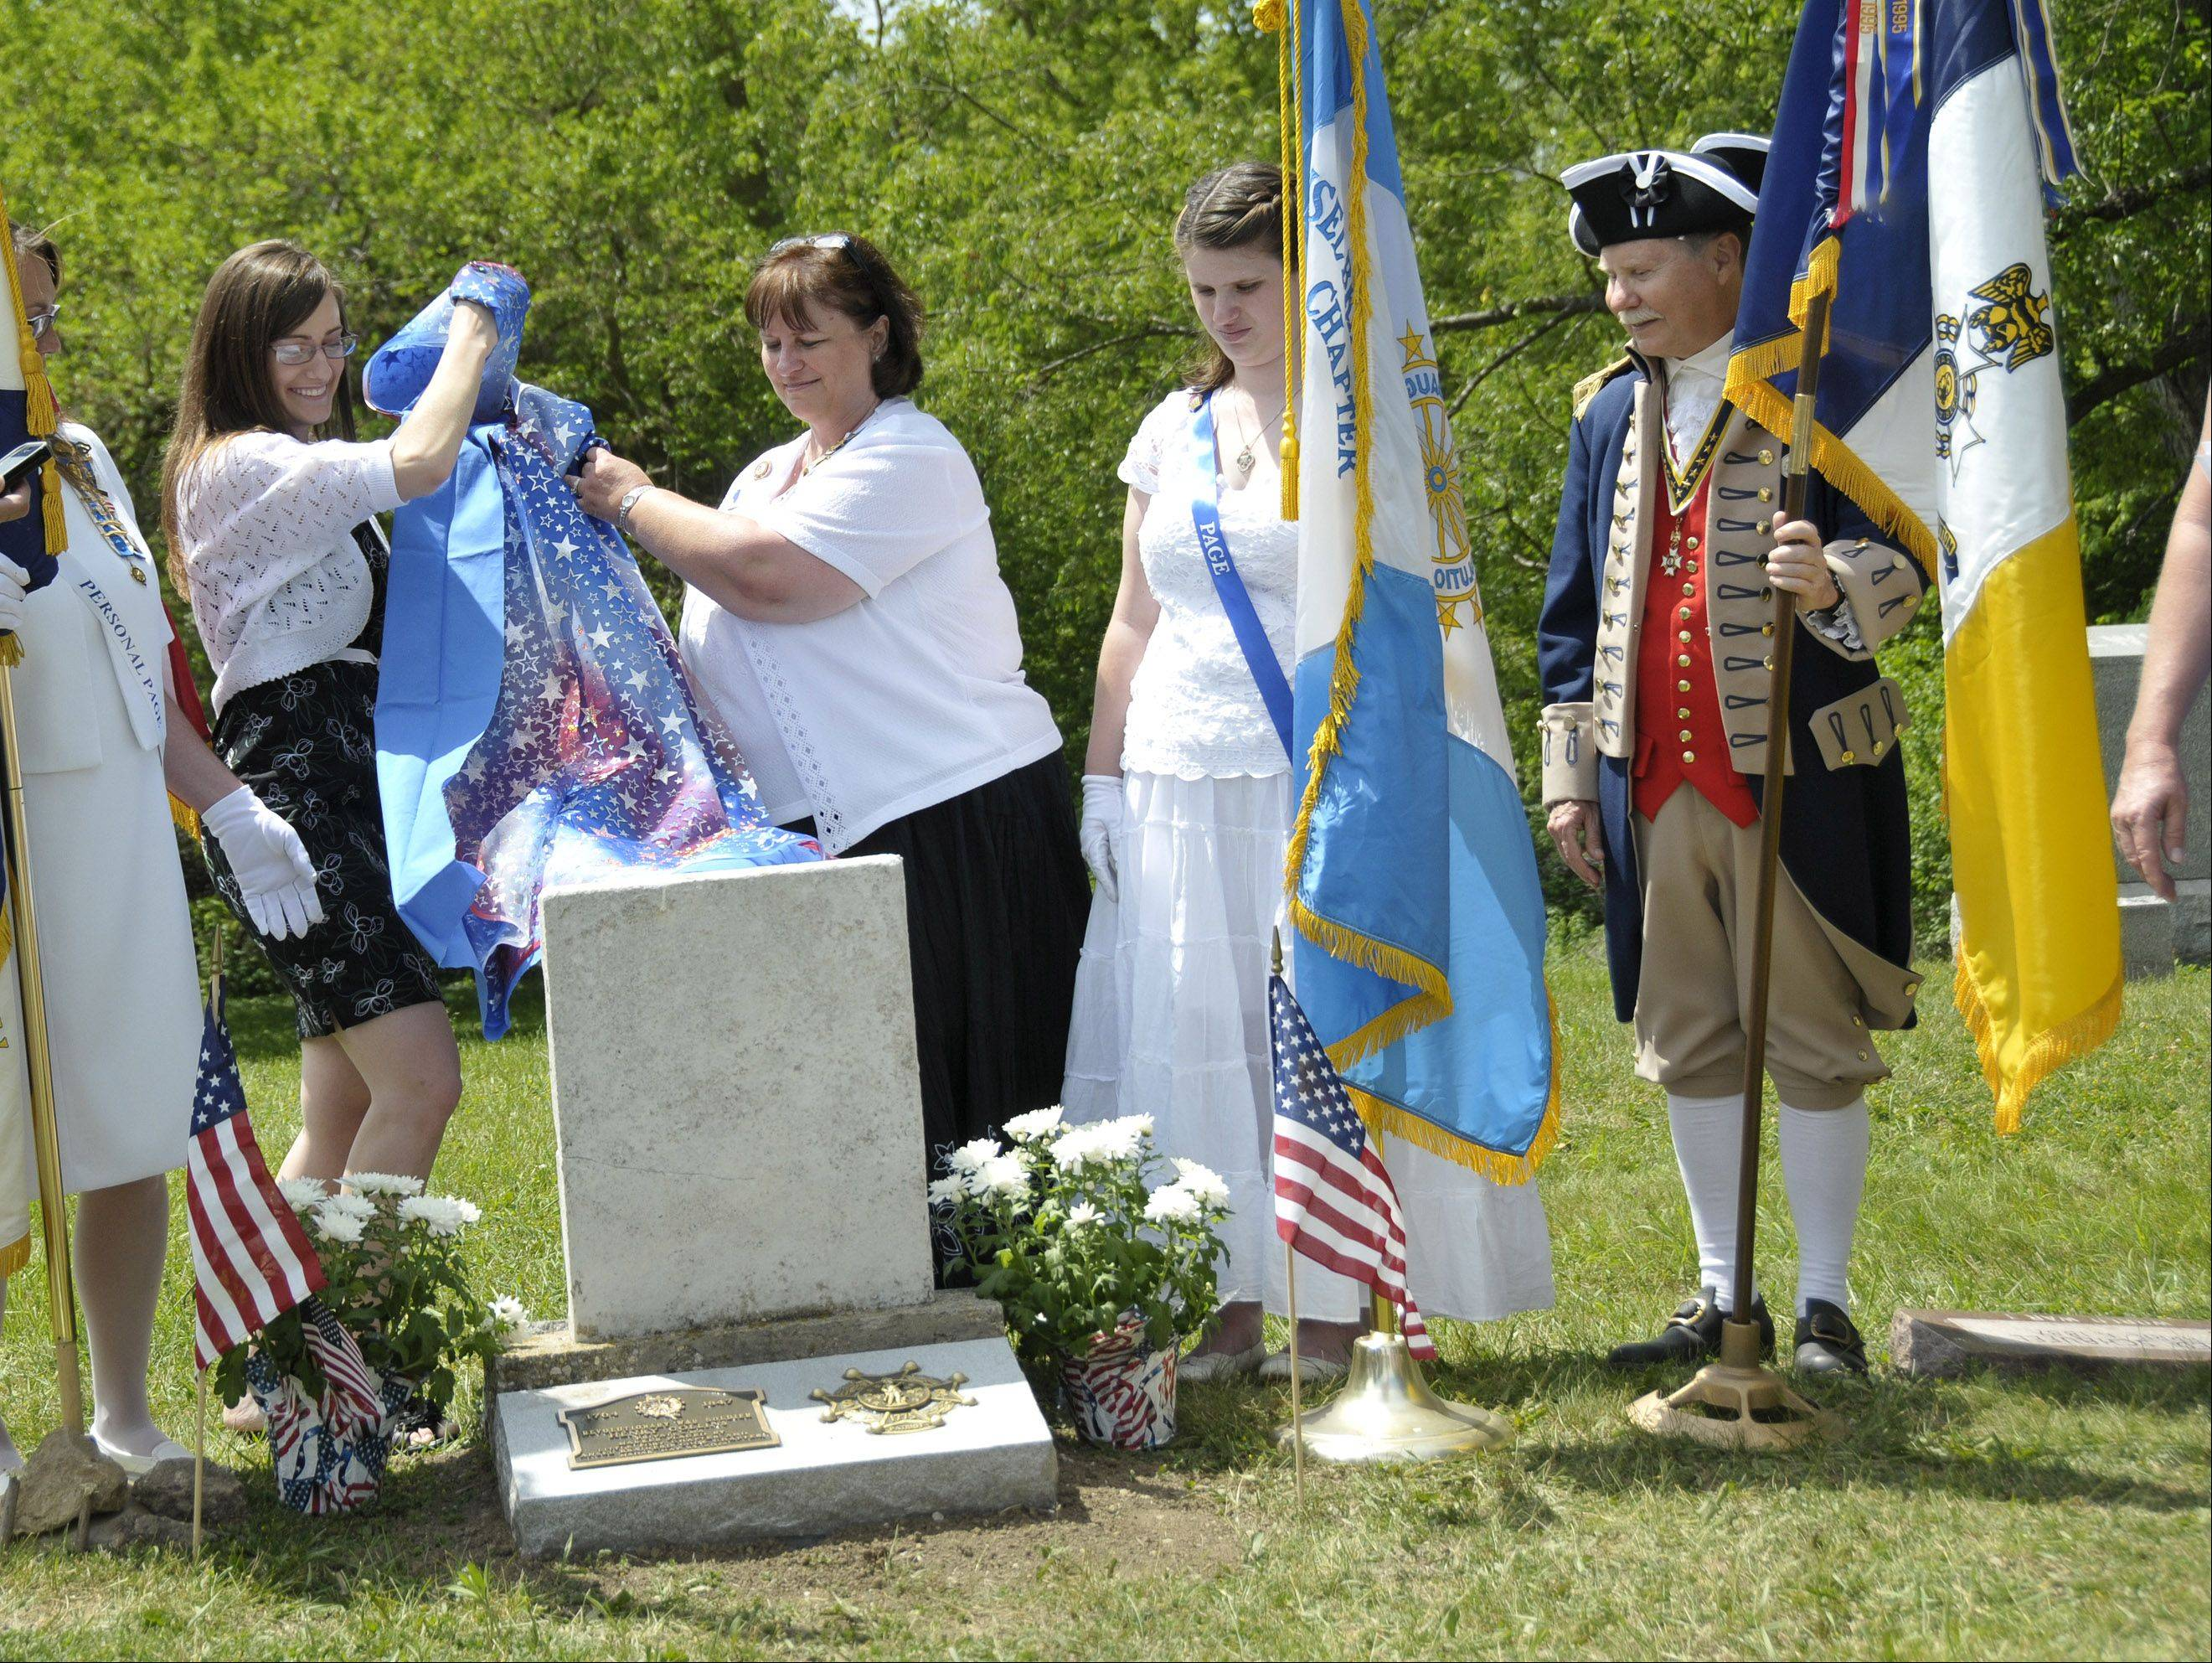 DAR Waukegan Chapter Regent, Hannah Perron, left, and DAR Libertyville Chapter Regent Denise Burja, 2nd left, unveil the new marker on Henry Collins' grave. DAR member Amanda Burja, 2nd right, and SAR member Don Parrish from Naperville, right, look on. Members of the Daughters of the American Revolution from Libertyville and Waukegan, and members of the Sons of the American Revolution from Lisle and Naperville honored Revolutionary War Soldier Henry Collins Friday at his gravesite in Wadsworth. Collins served for two years in the Revolutionary War with a Massachusetts regiment. In 1844, he moved to Lake County with his son Joseph Collins and settled on land in Newport Township. The DAR and SAR have an ongoing project to locate and mark the graves of Revolutionary War Soldiers in Illinois.